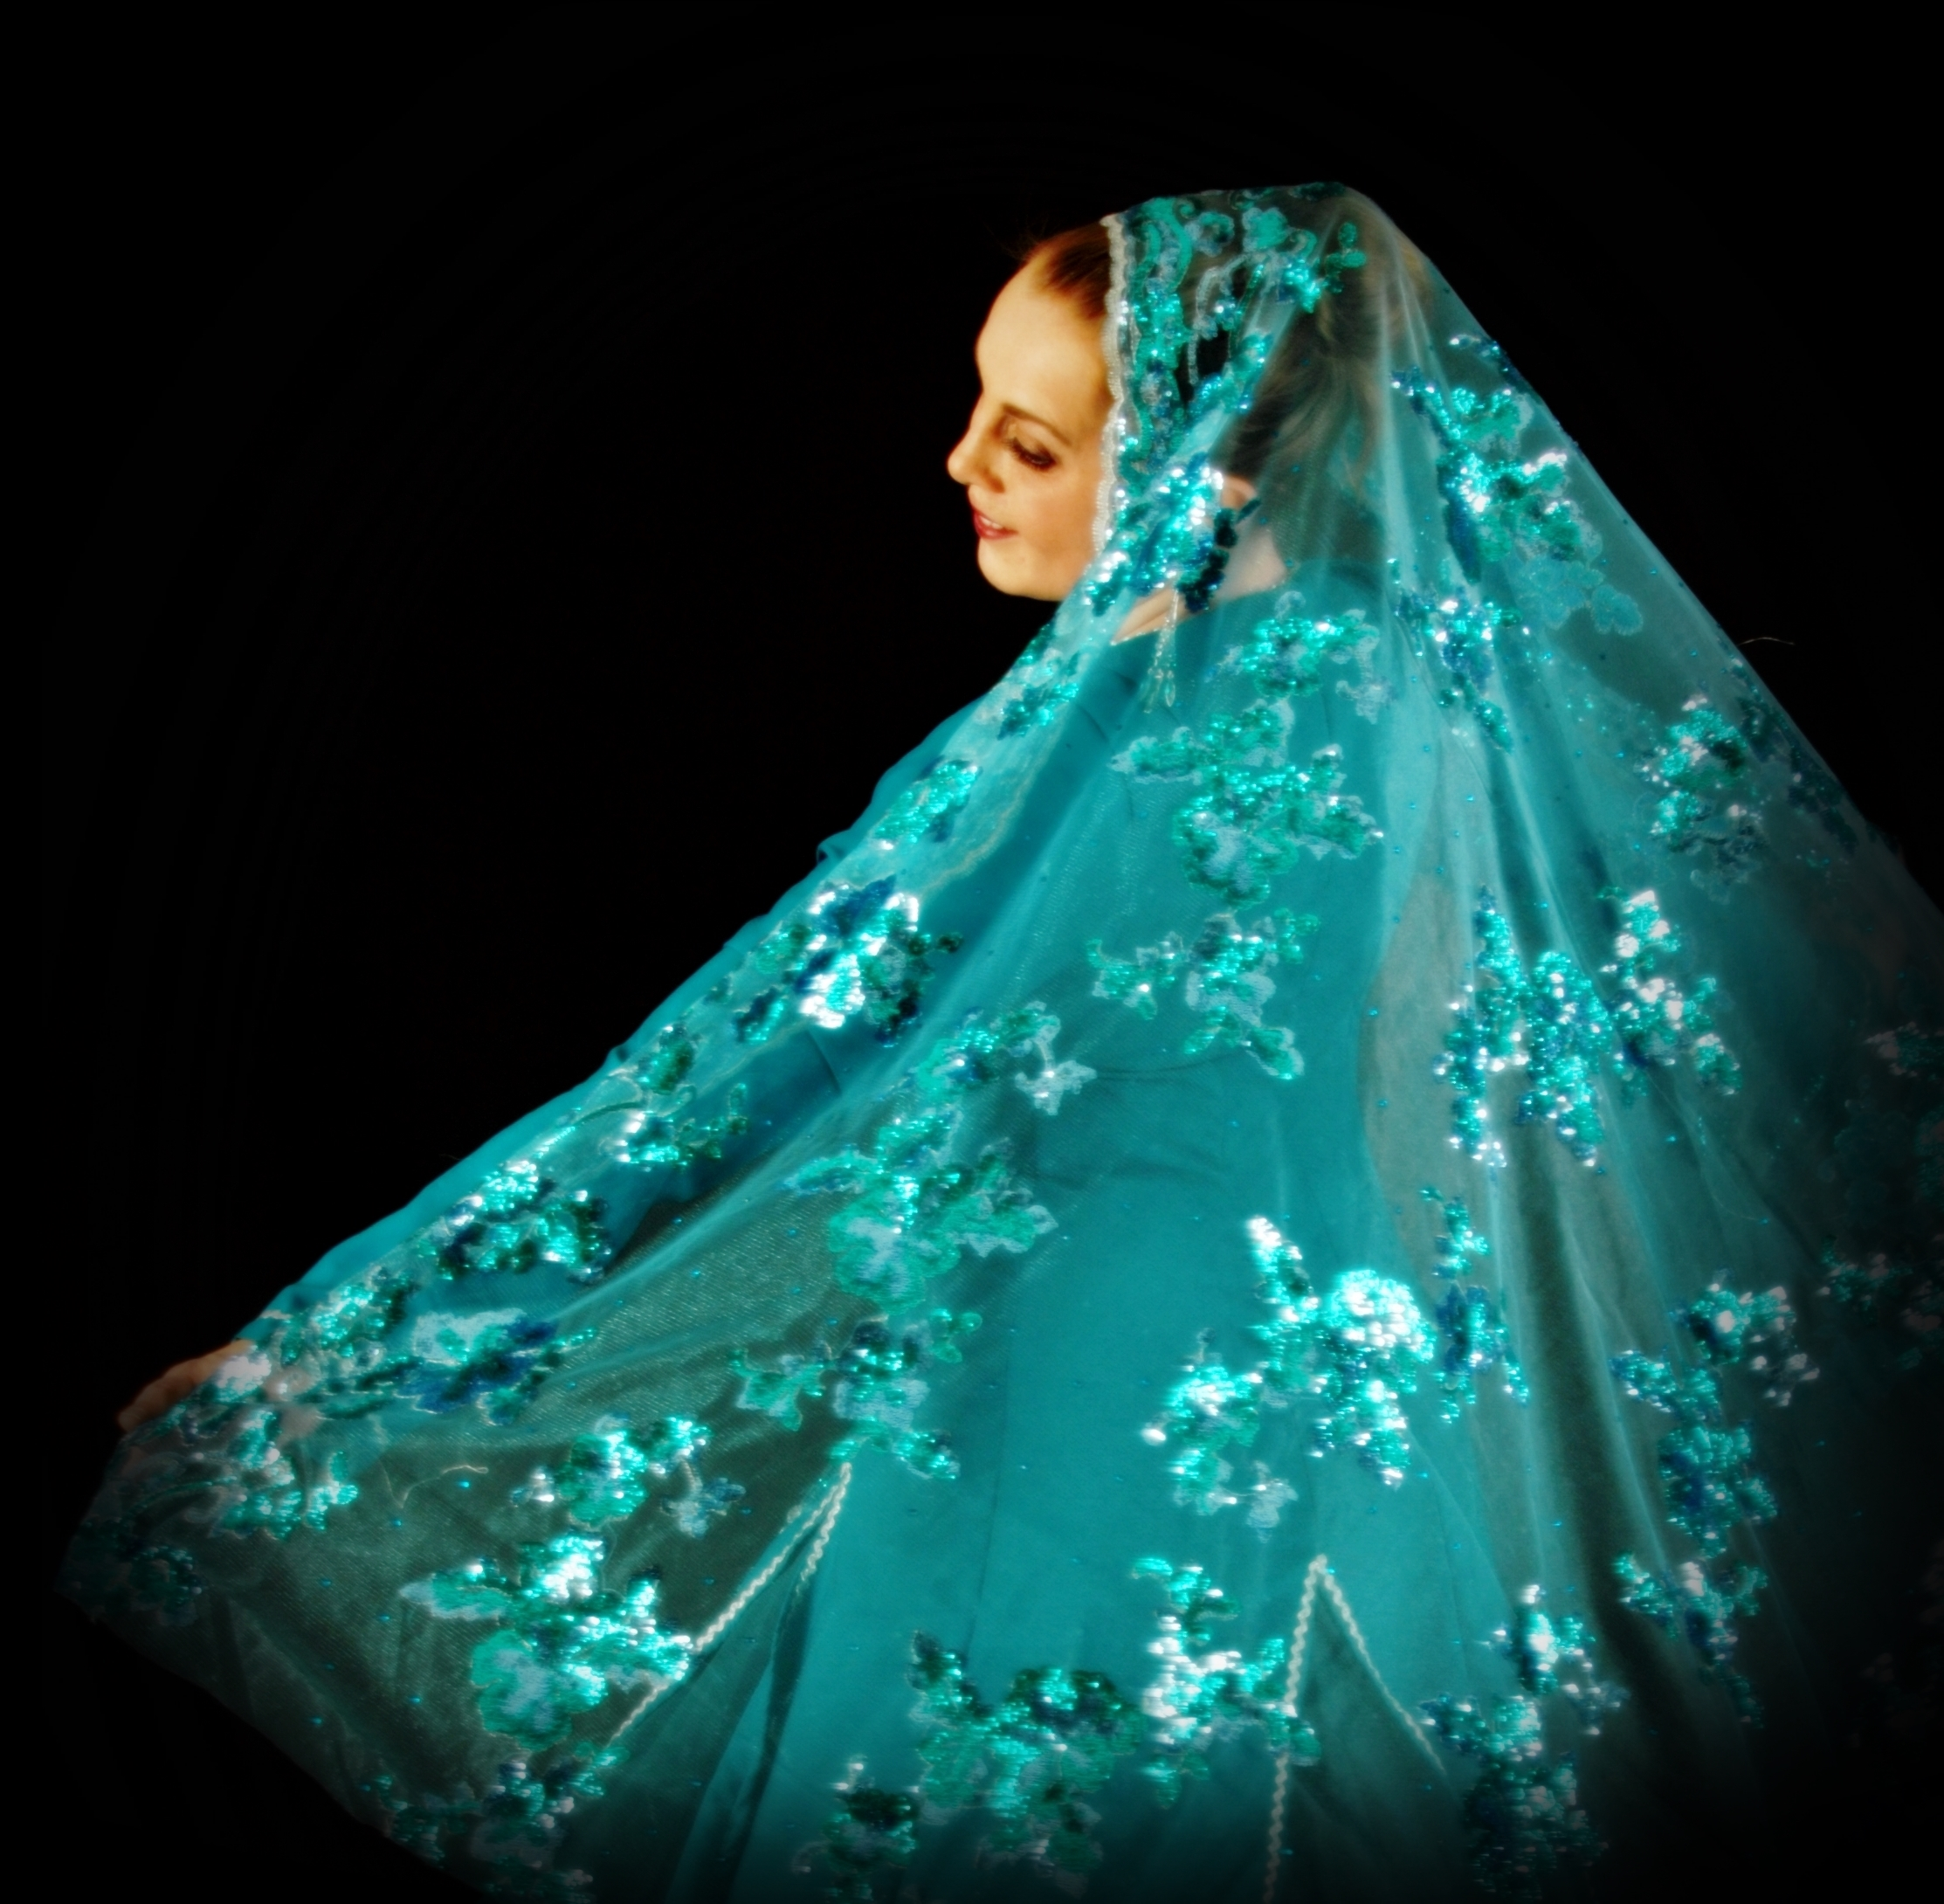 Maria Oriental - Persian Classical Dance. Photo: Lars Uddén, Swefoto AB